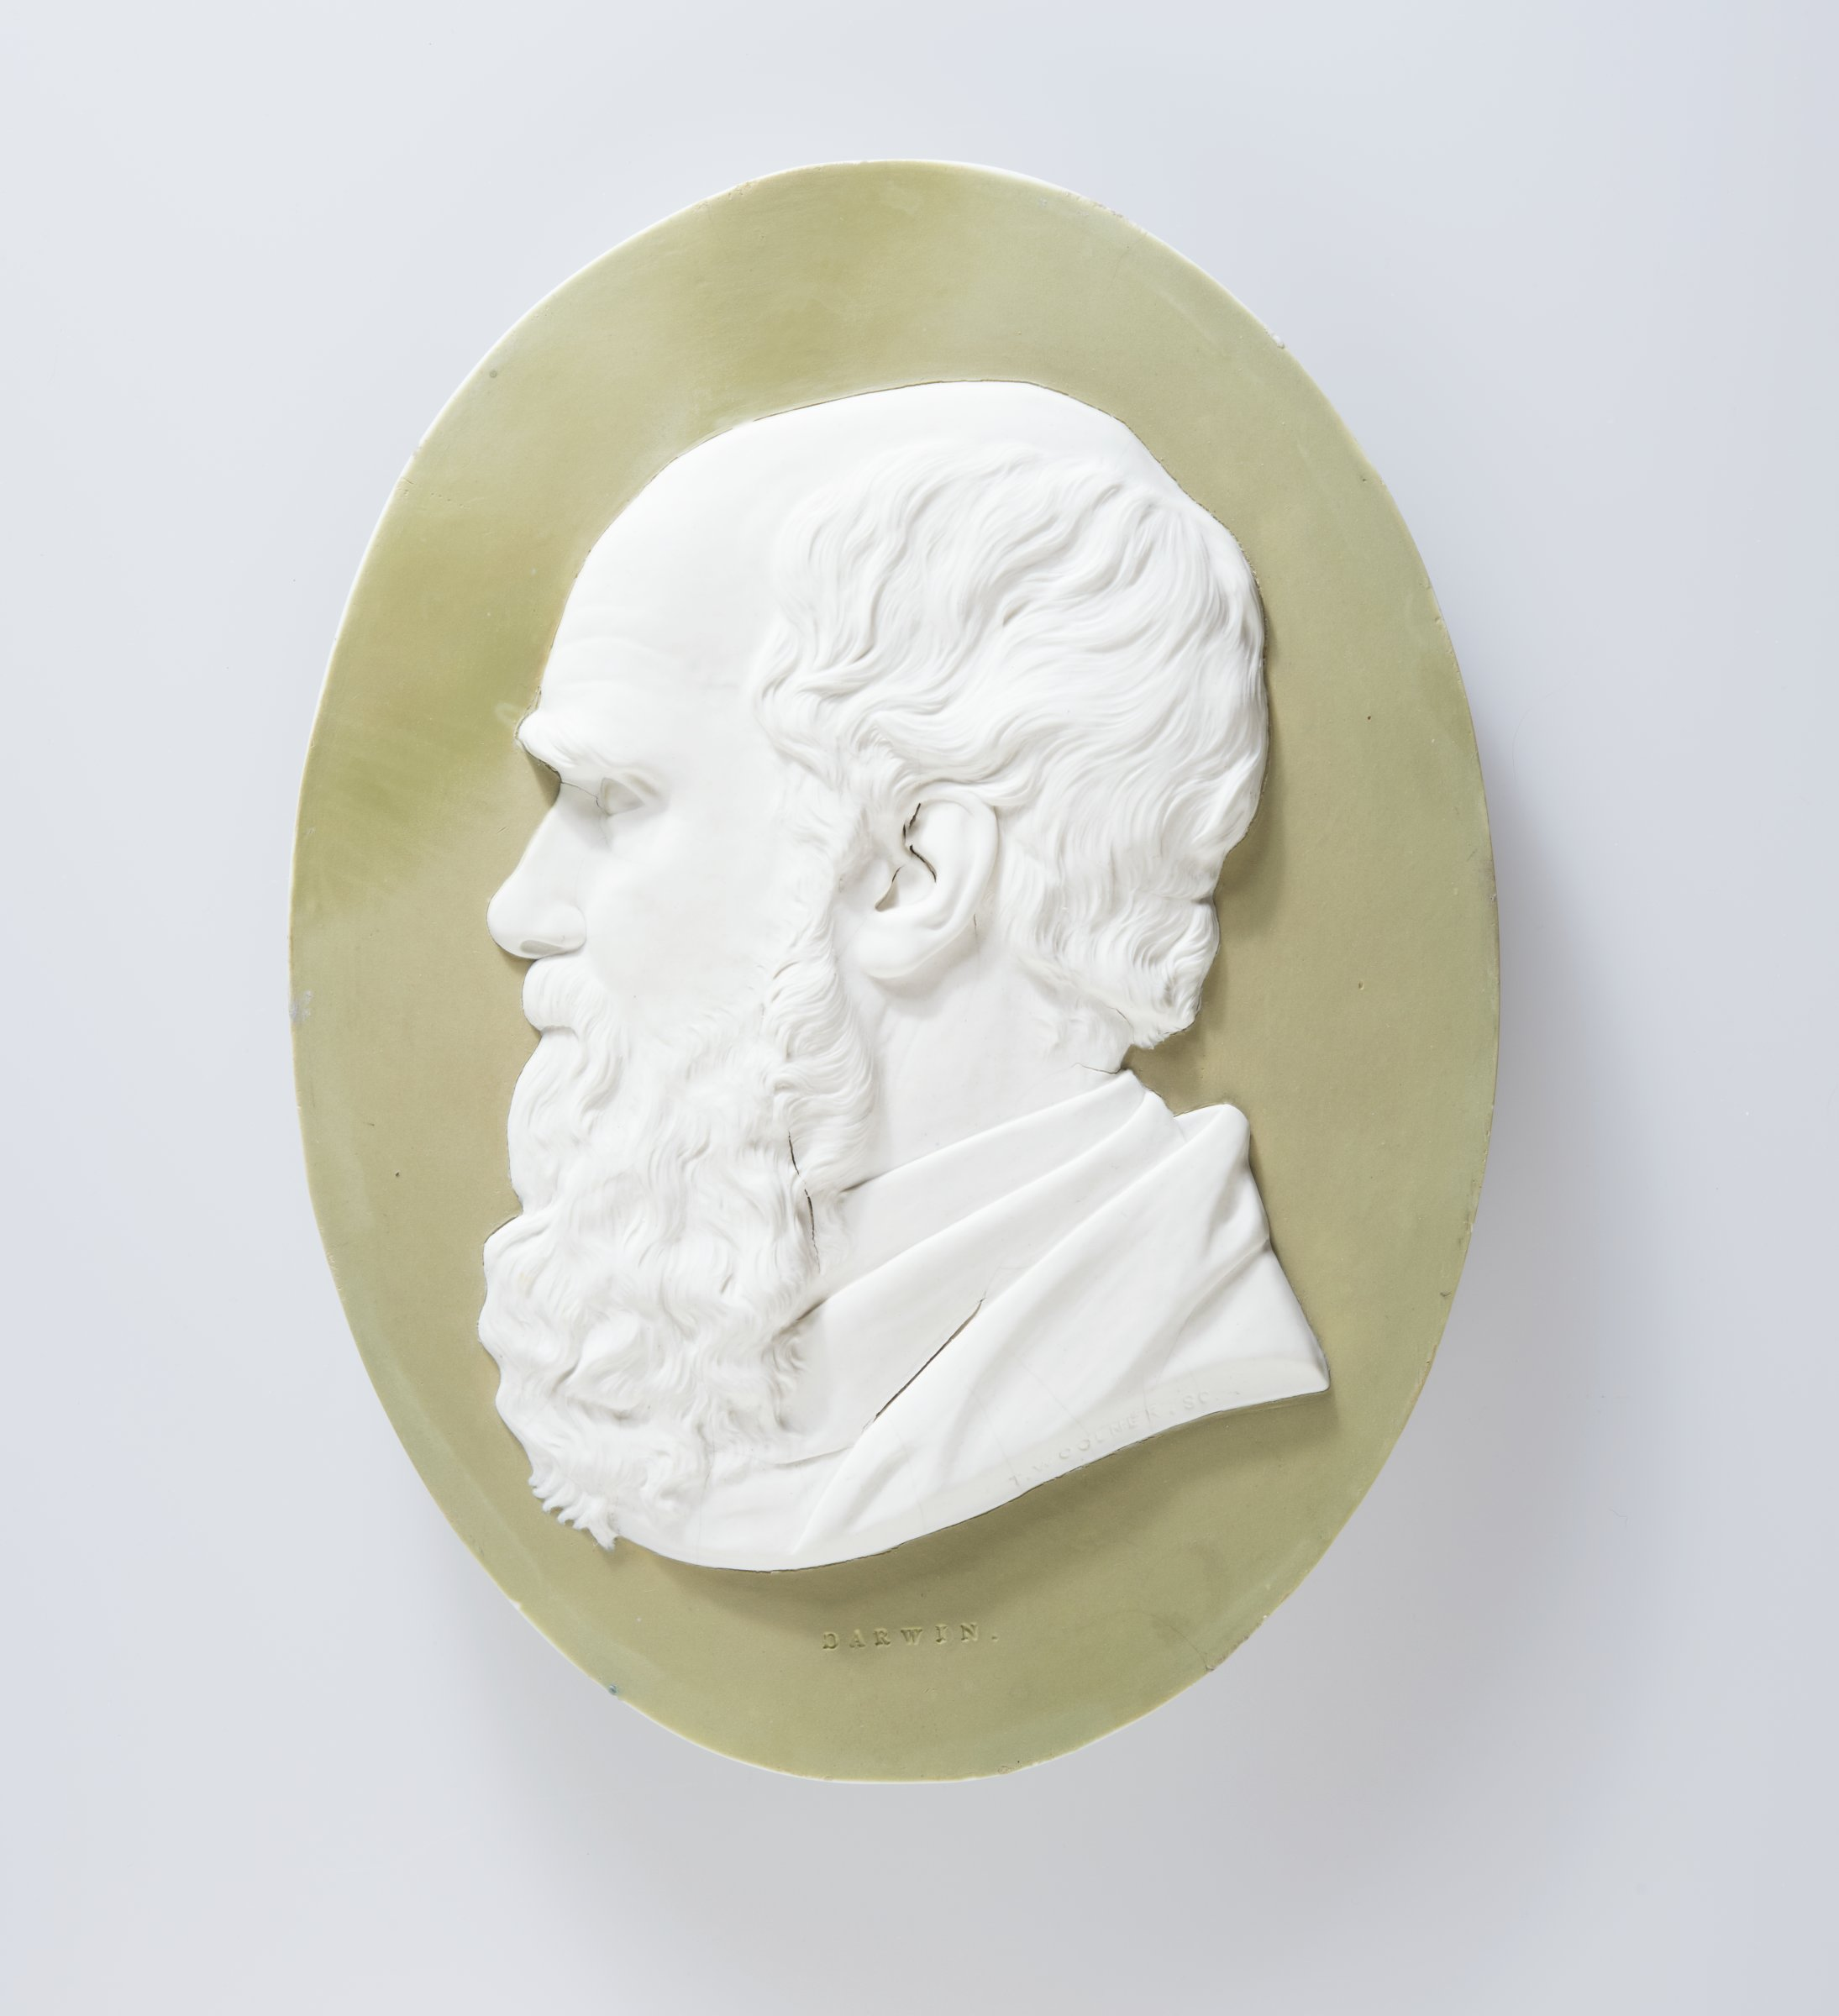 Large oval plaque of white jasper with peach-green jasper dip and white relief decoration with the portrait bust of Charles Robert Darwin (1809-1882), English naturalist, biologist and geologist, to left.